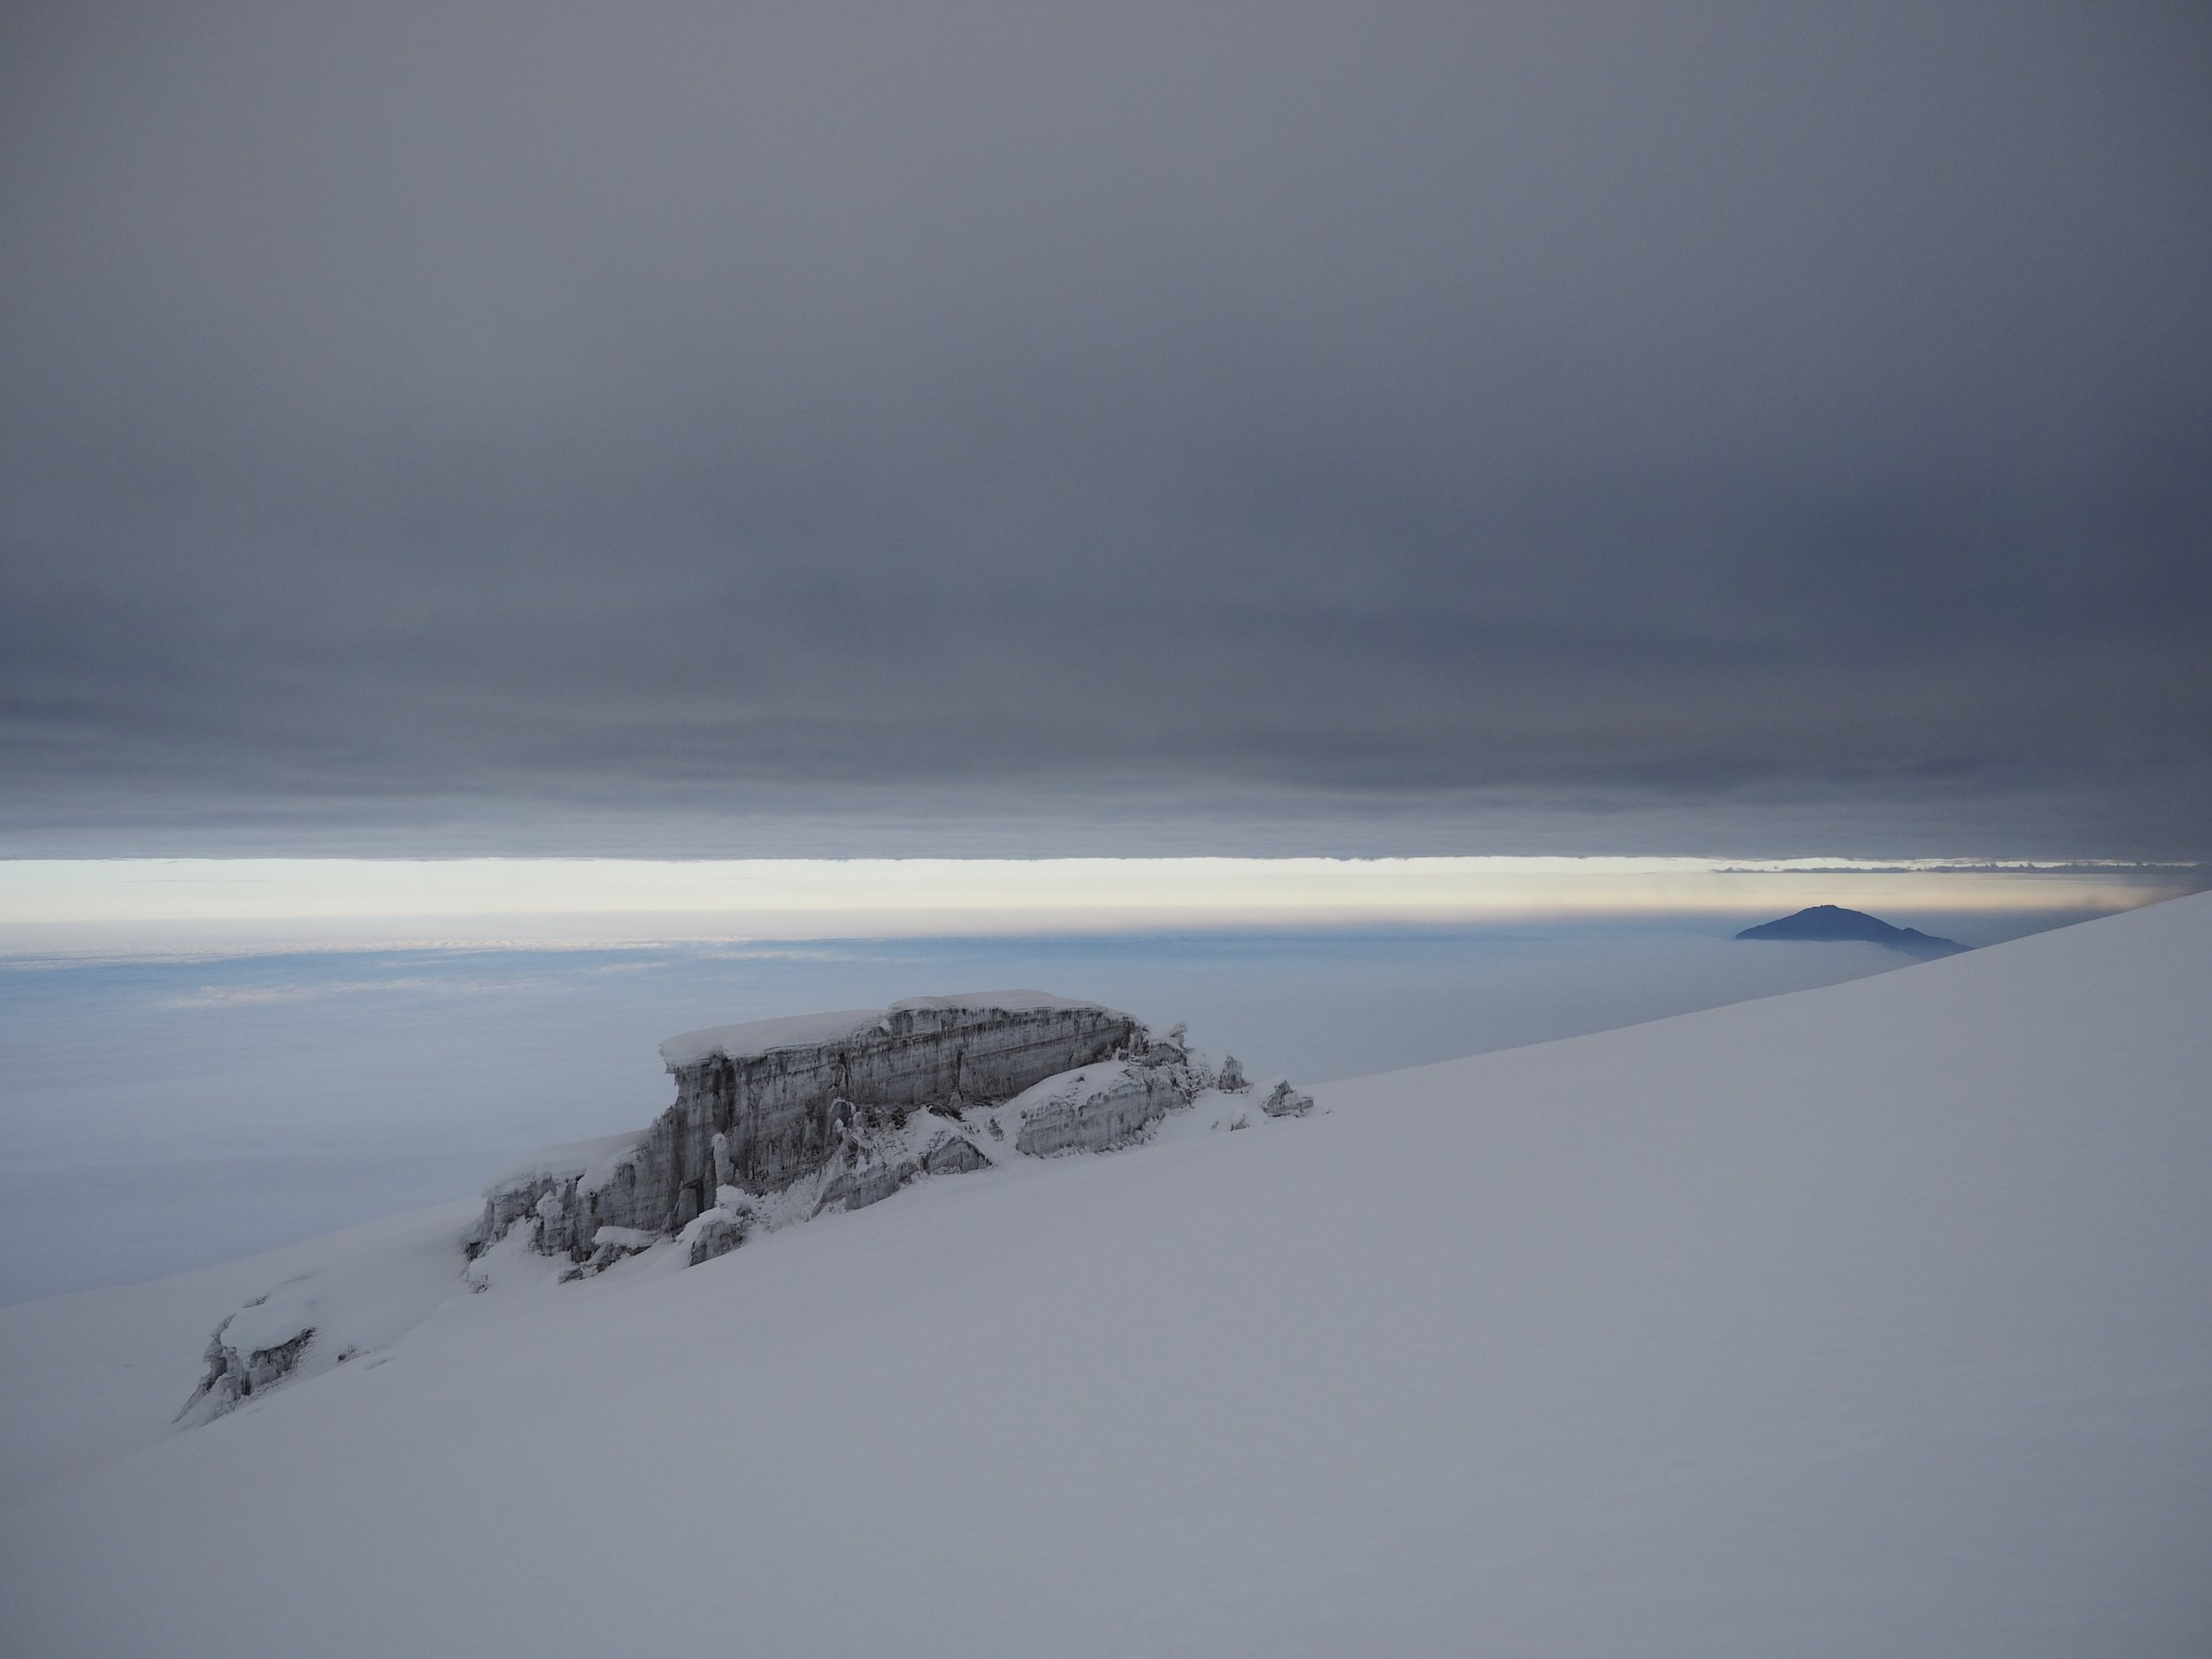 The other side of the summit was more dramatic.